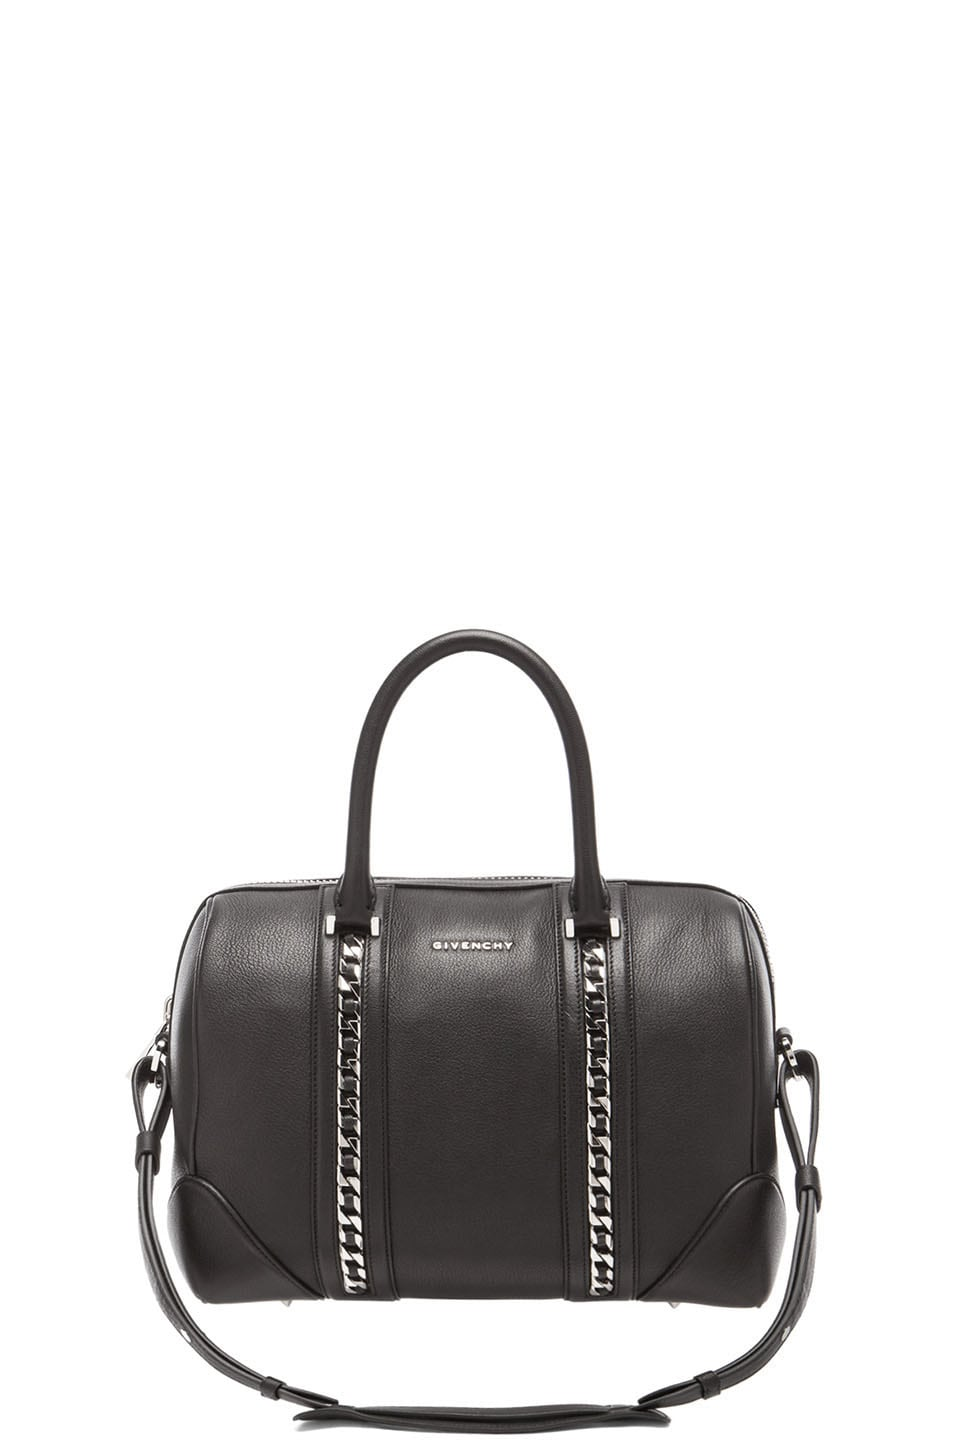 322a08d54244 Image 1 of Givenchy Chain Animation Medium Lucrezia in Black